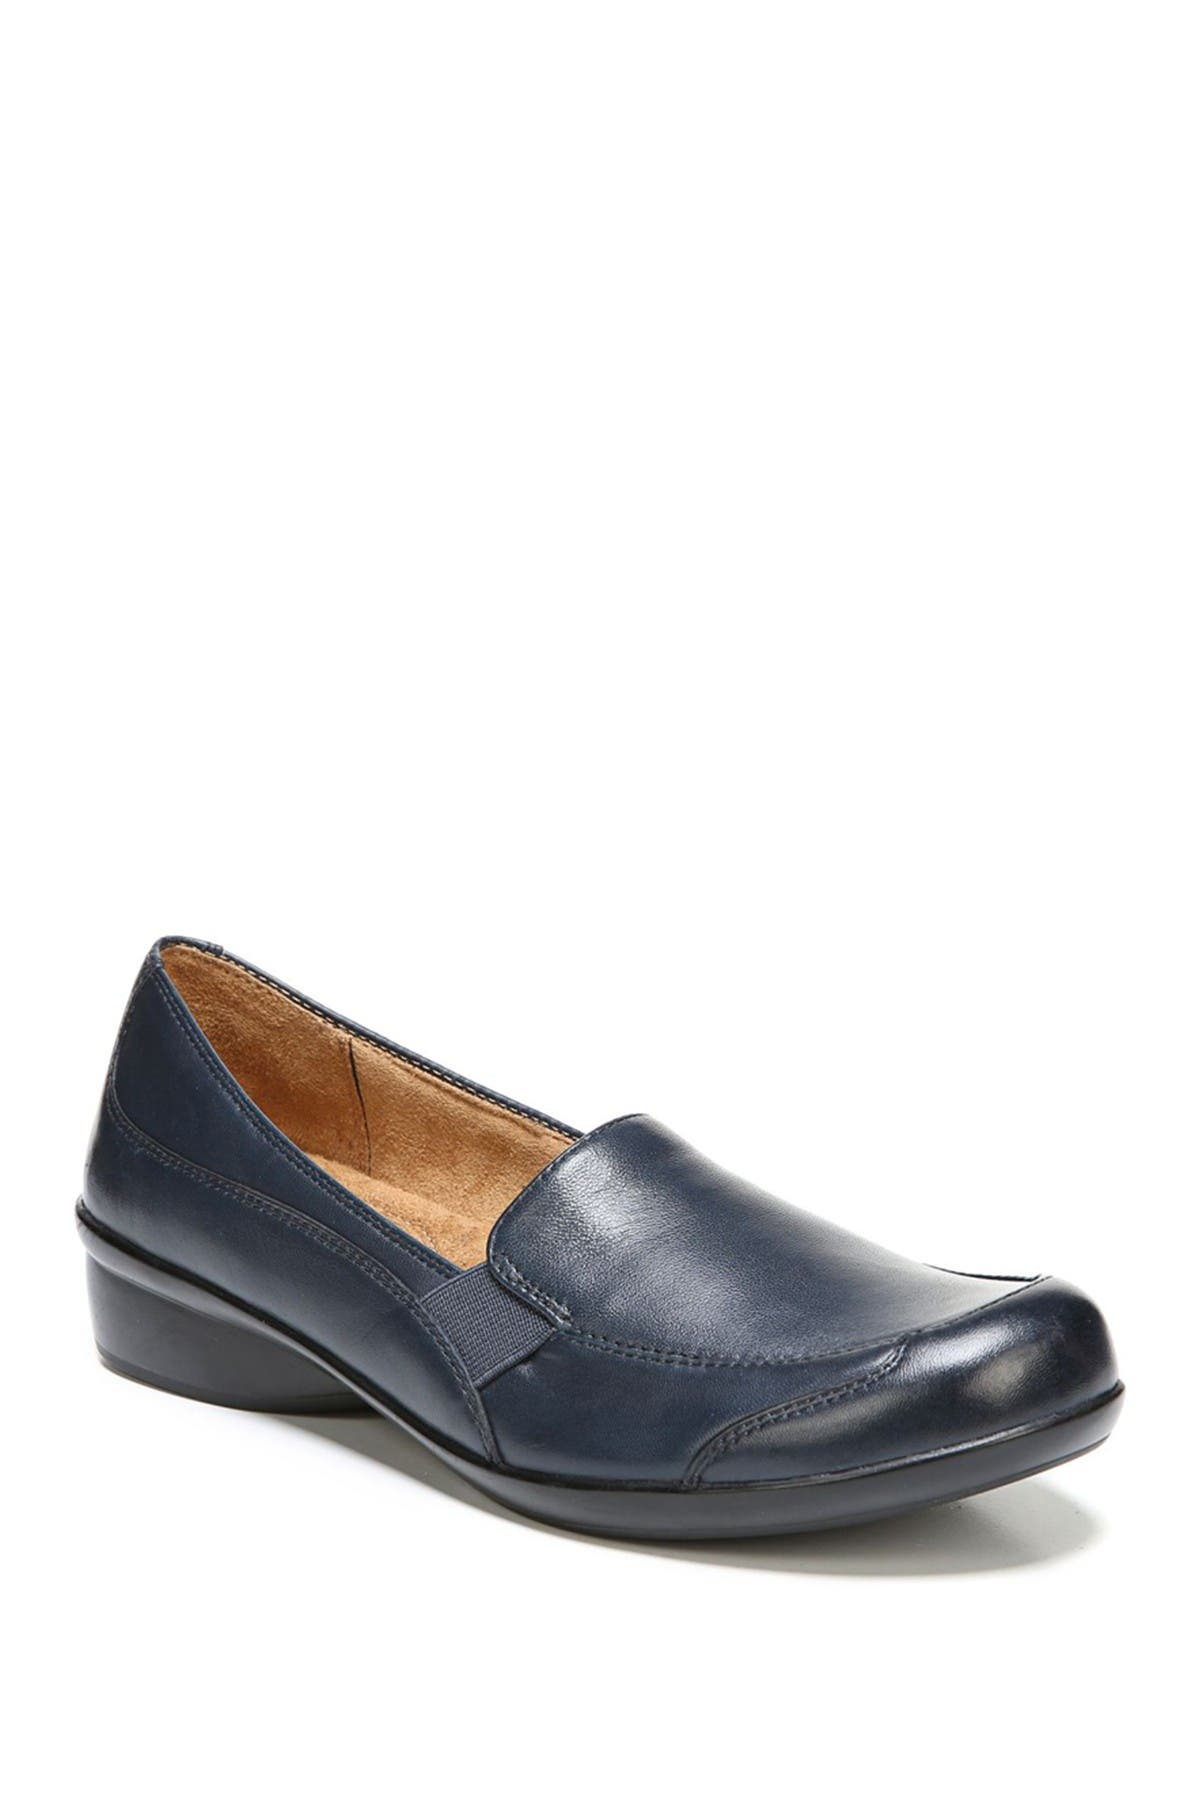 Image of SOUL Naturalizer Carryon Leather Loafer